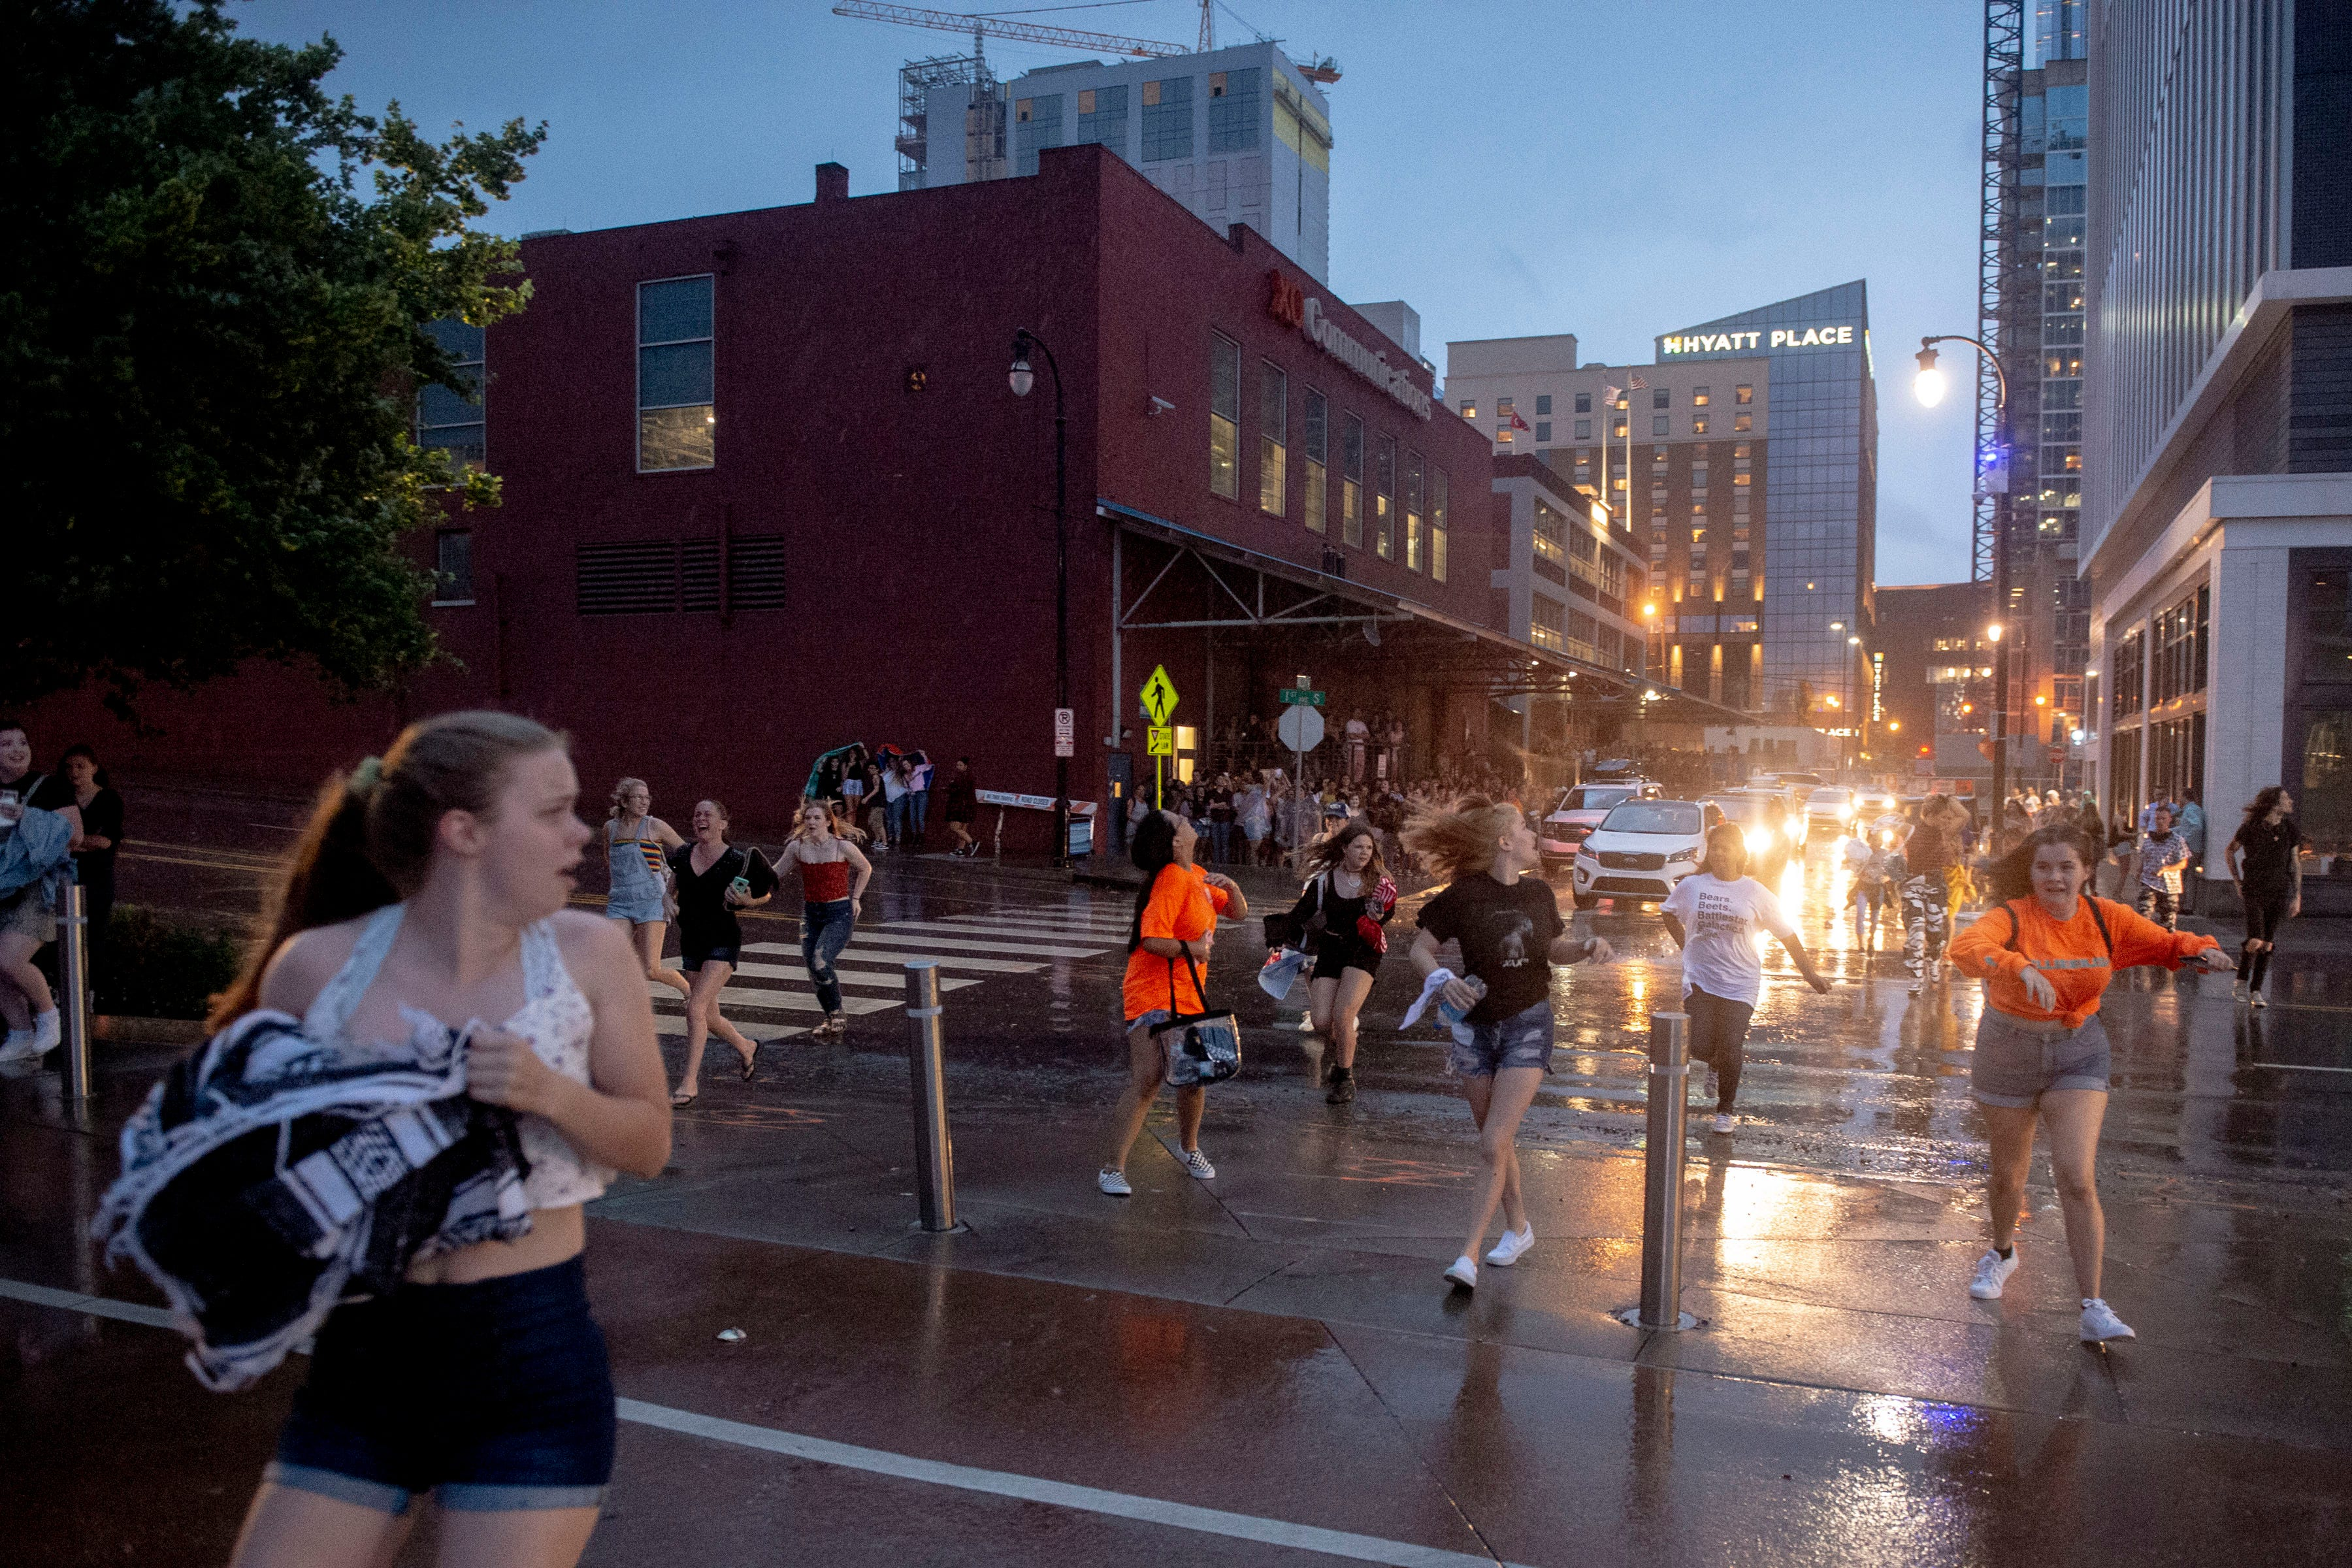 Severe thunderstorms in Nashville: Billie Eilish fans evacuate Ascend Amphitheater